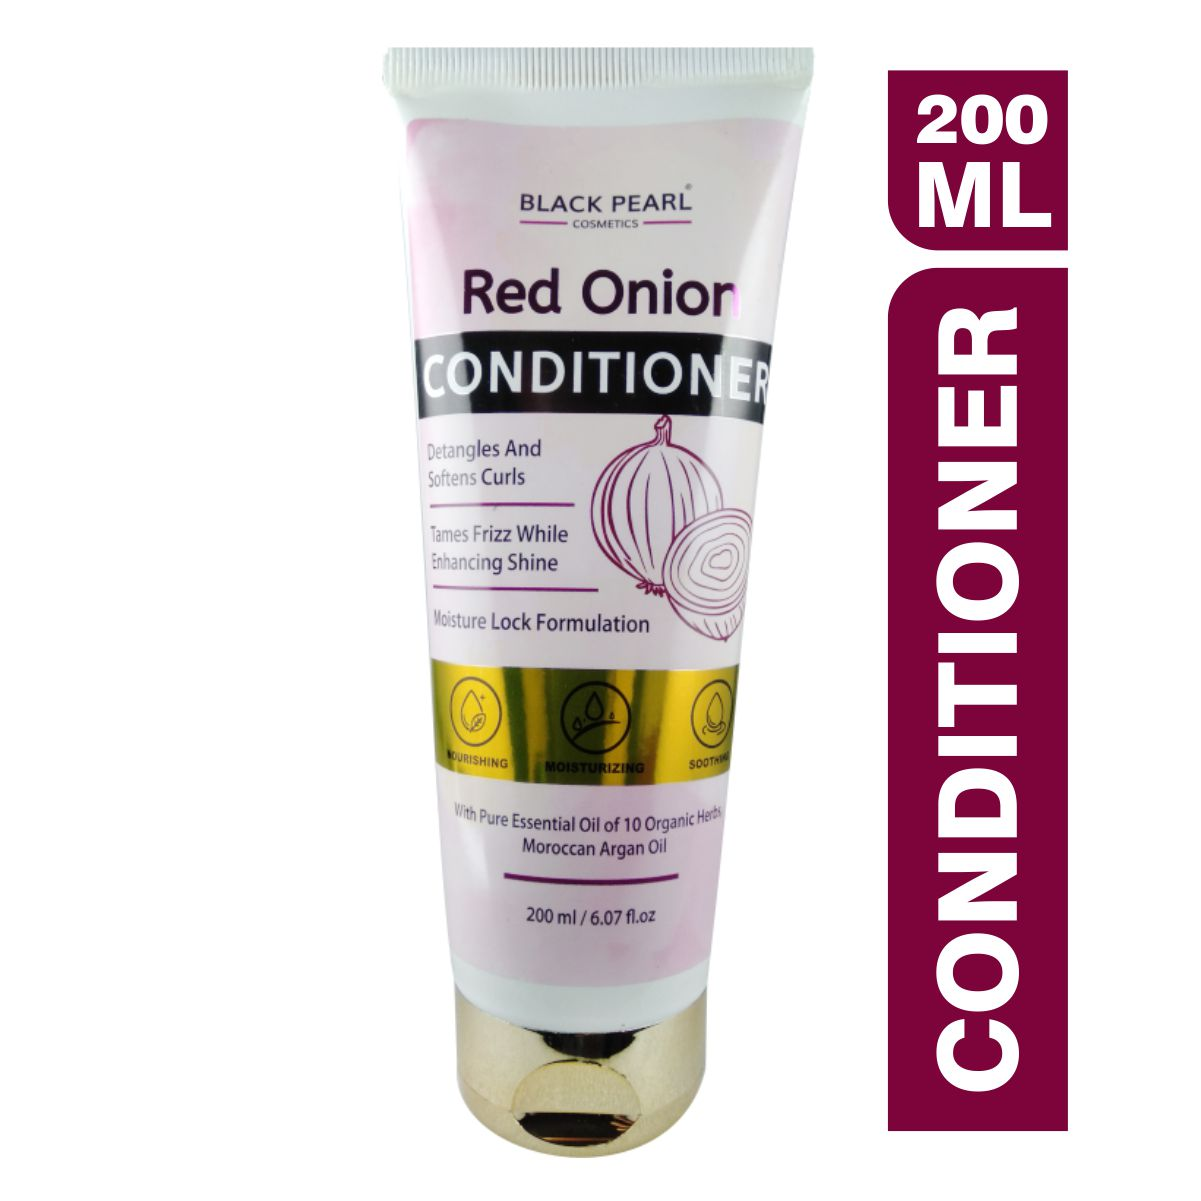 Cosmetic Manufacturer Thane Black Pearl Red Onion Conditioner